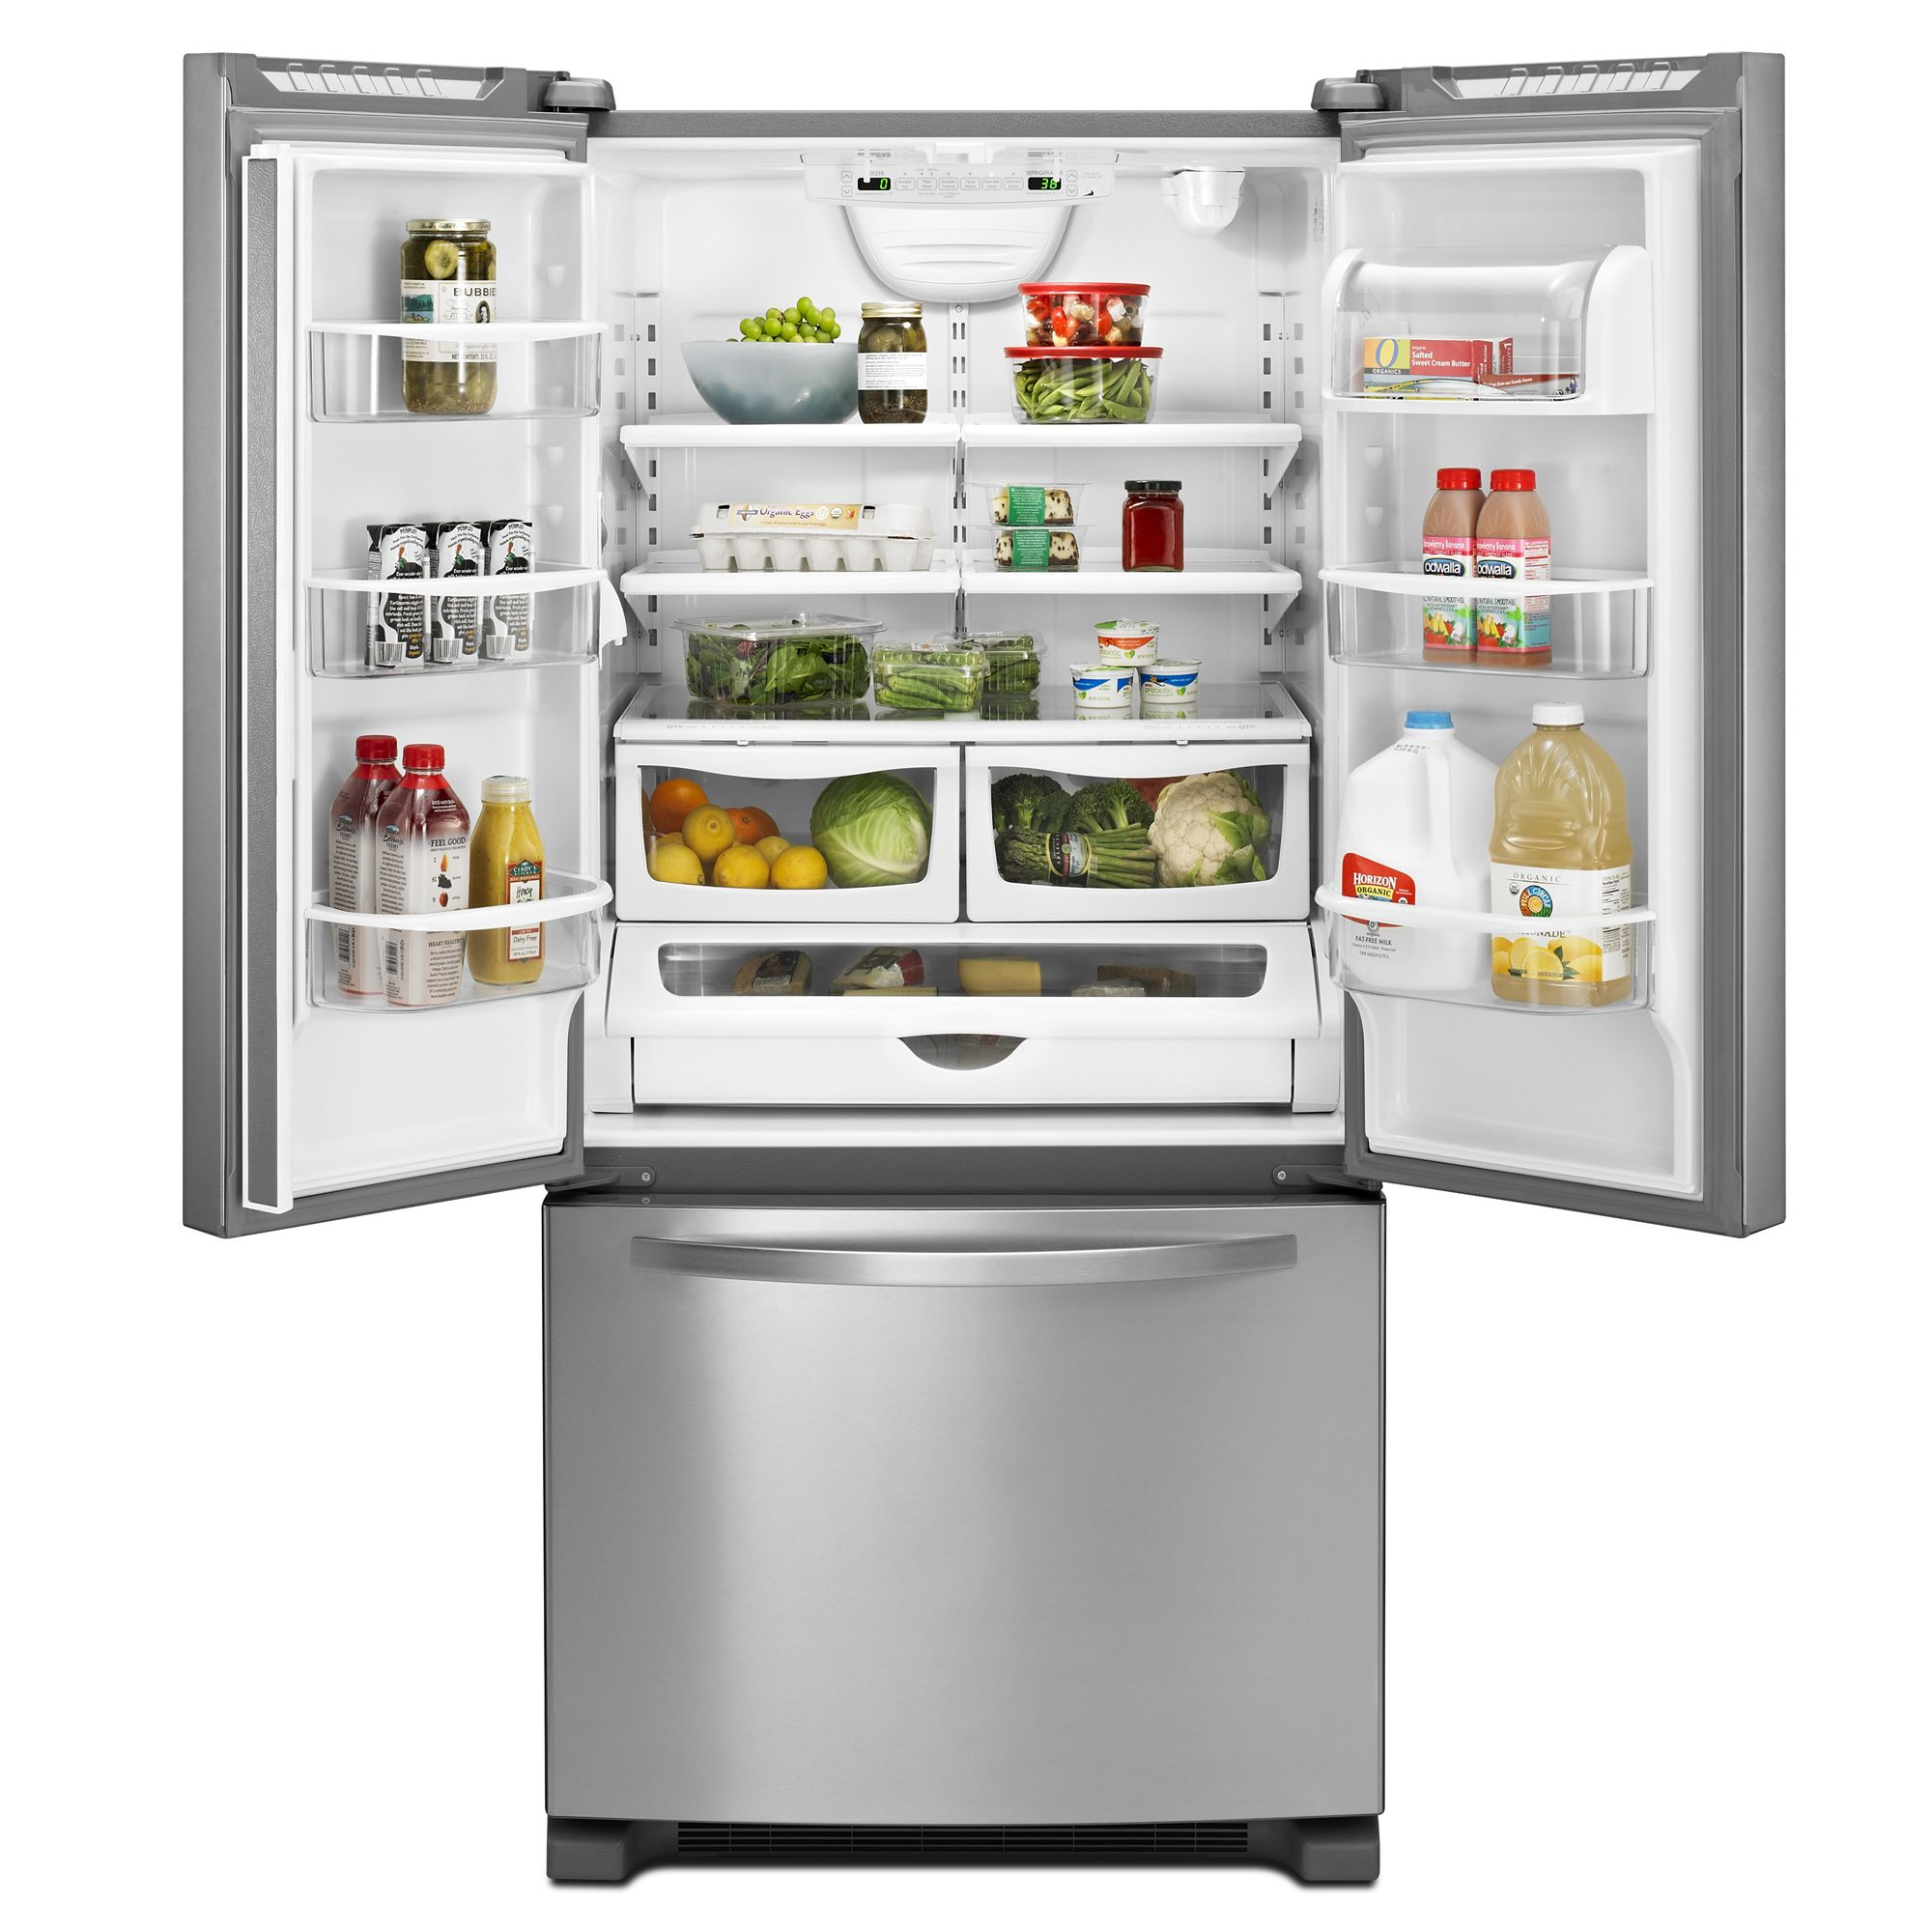 Kenmore 21.9 cu. ft. French-Door Bottom-Freezer Refrigerator w/Internal Dispenser - Stainless Steel